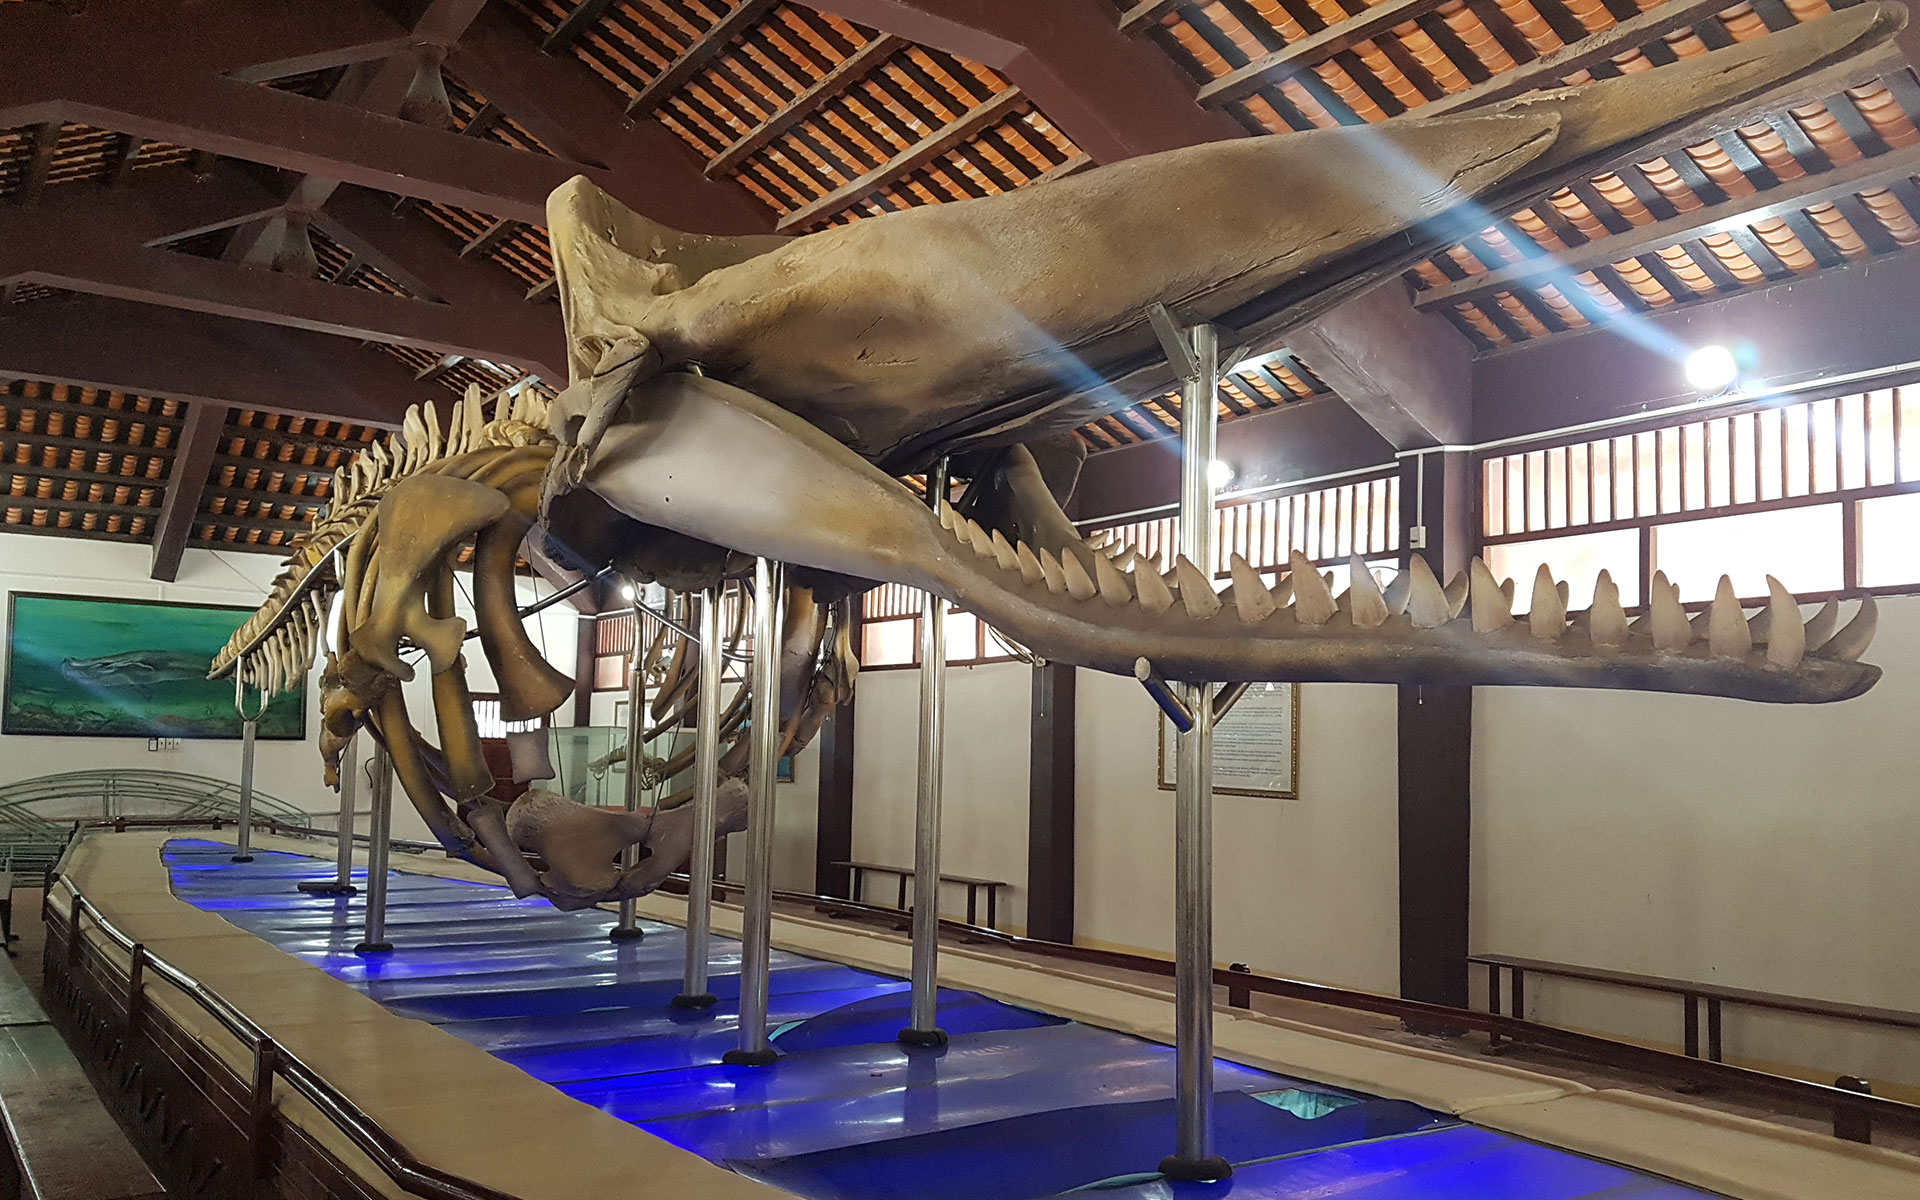 The huge whale skeleton in Van Thanh An Whale Temple